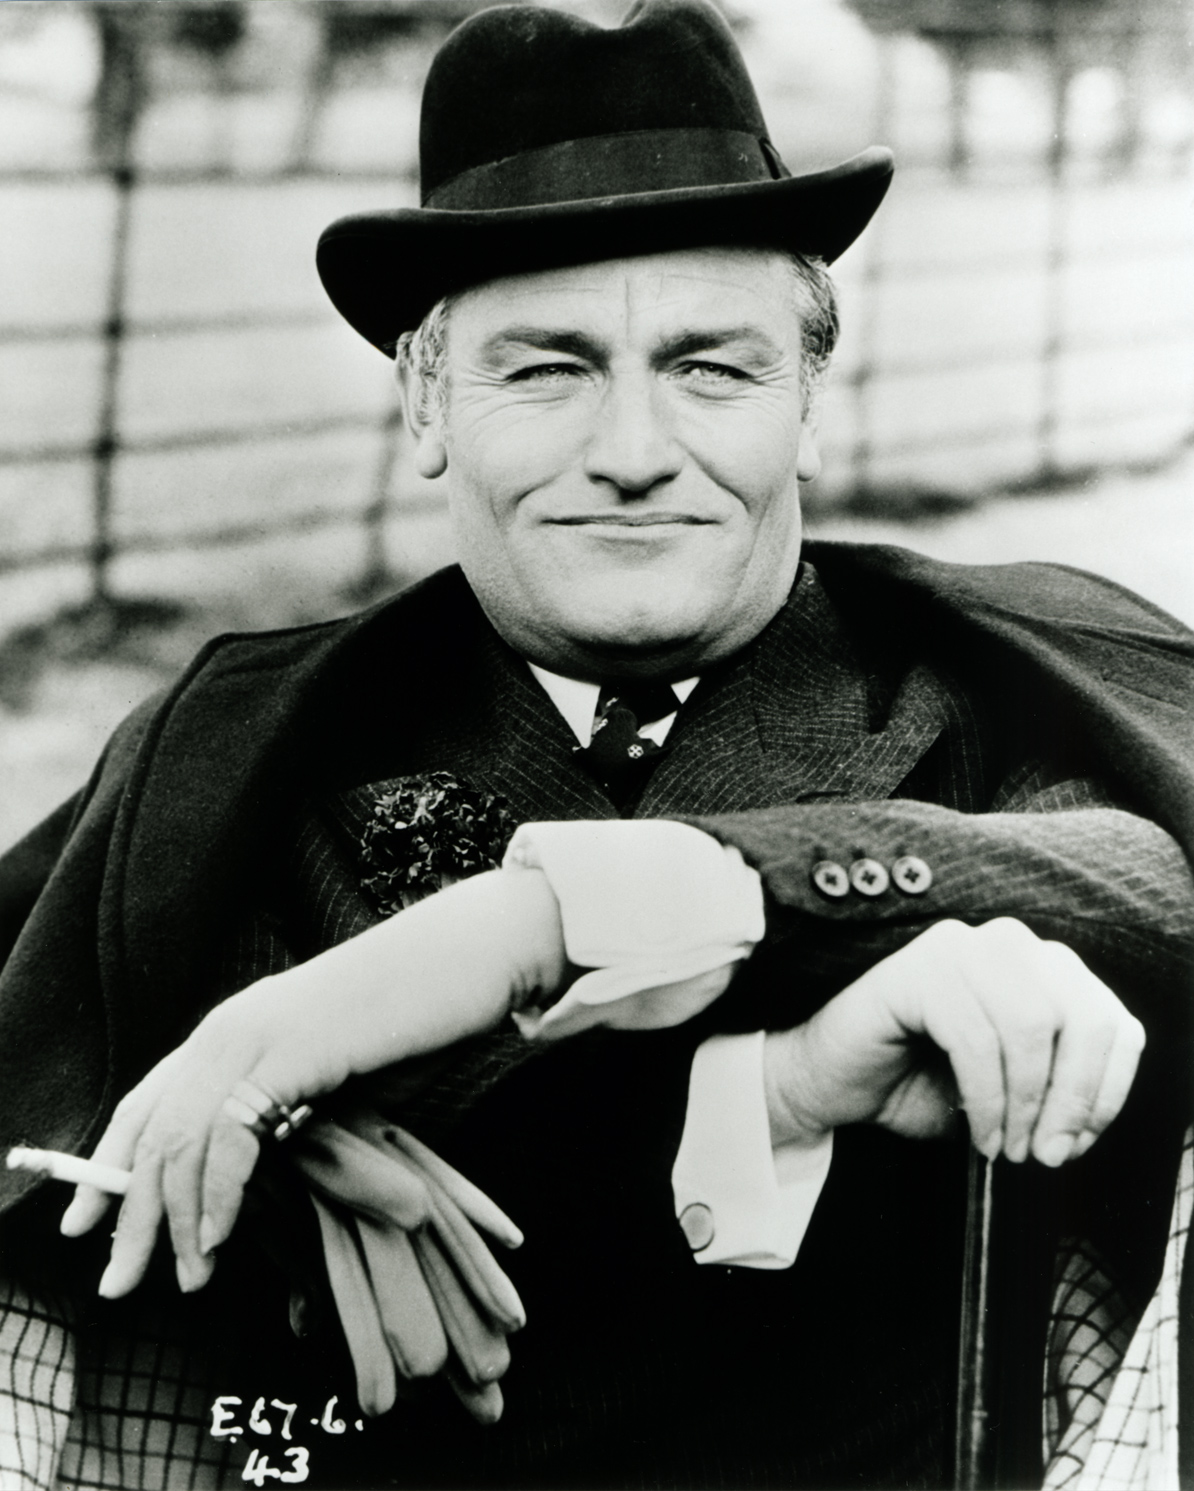 charles gray x readercharles gray young, charles gray millionaire, charles gray, charles gray prime minister, charles gray actor, charles gray kuroshitsuji, charles gray black butler, charles gray newcastle, charles gray duchess of devonshire, charles gray x reader, charles gray coats, charles gray london, charles gray gay, charles gray kitchens, charles gray mime, charles gray oklahoma city, charles gray rawhide, charles gray politician, charles gray obituary, charles gray georgiana